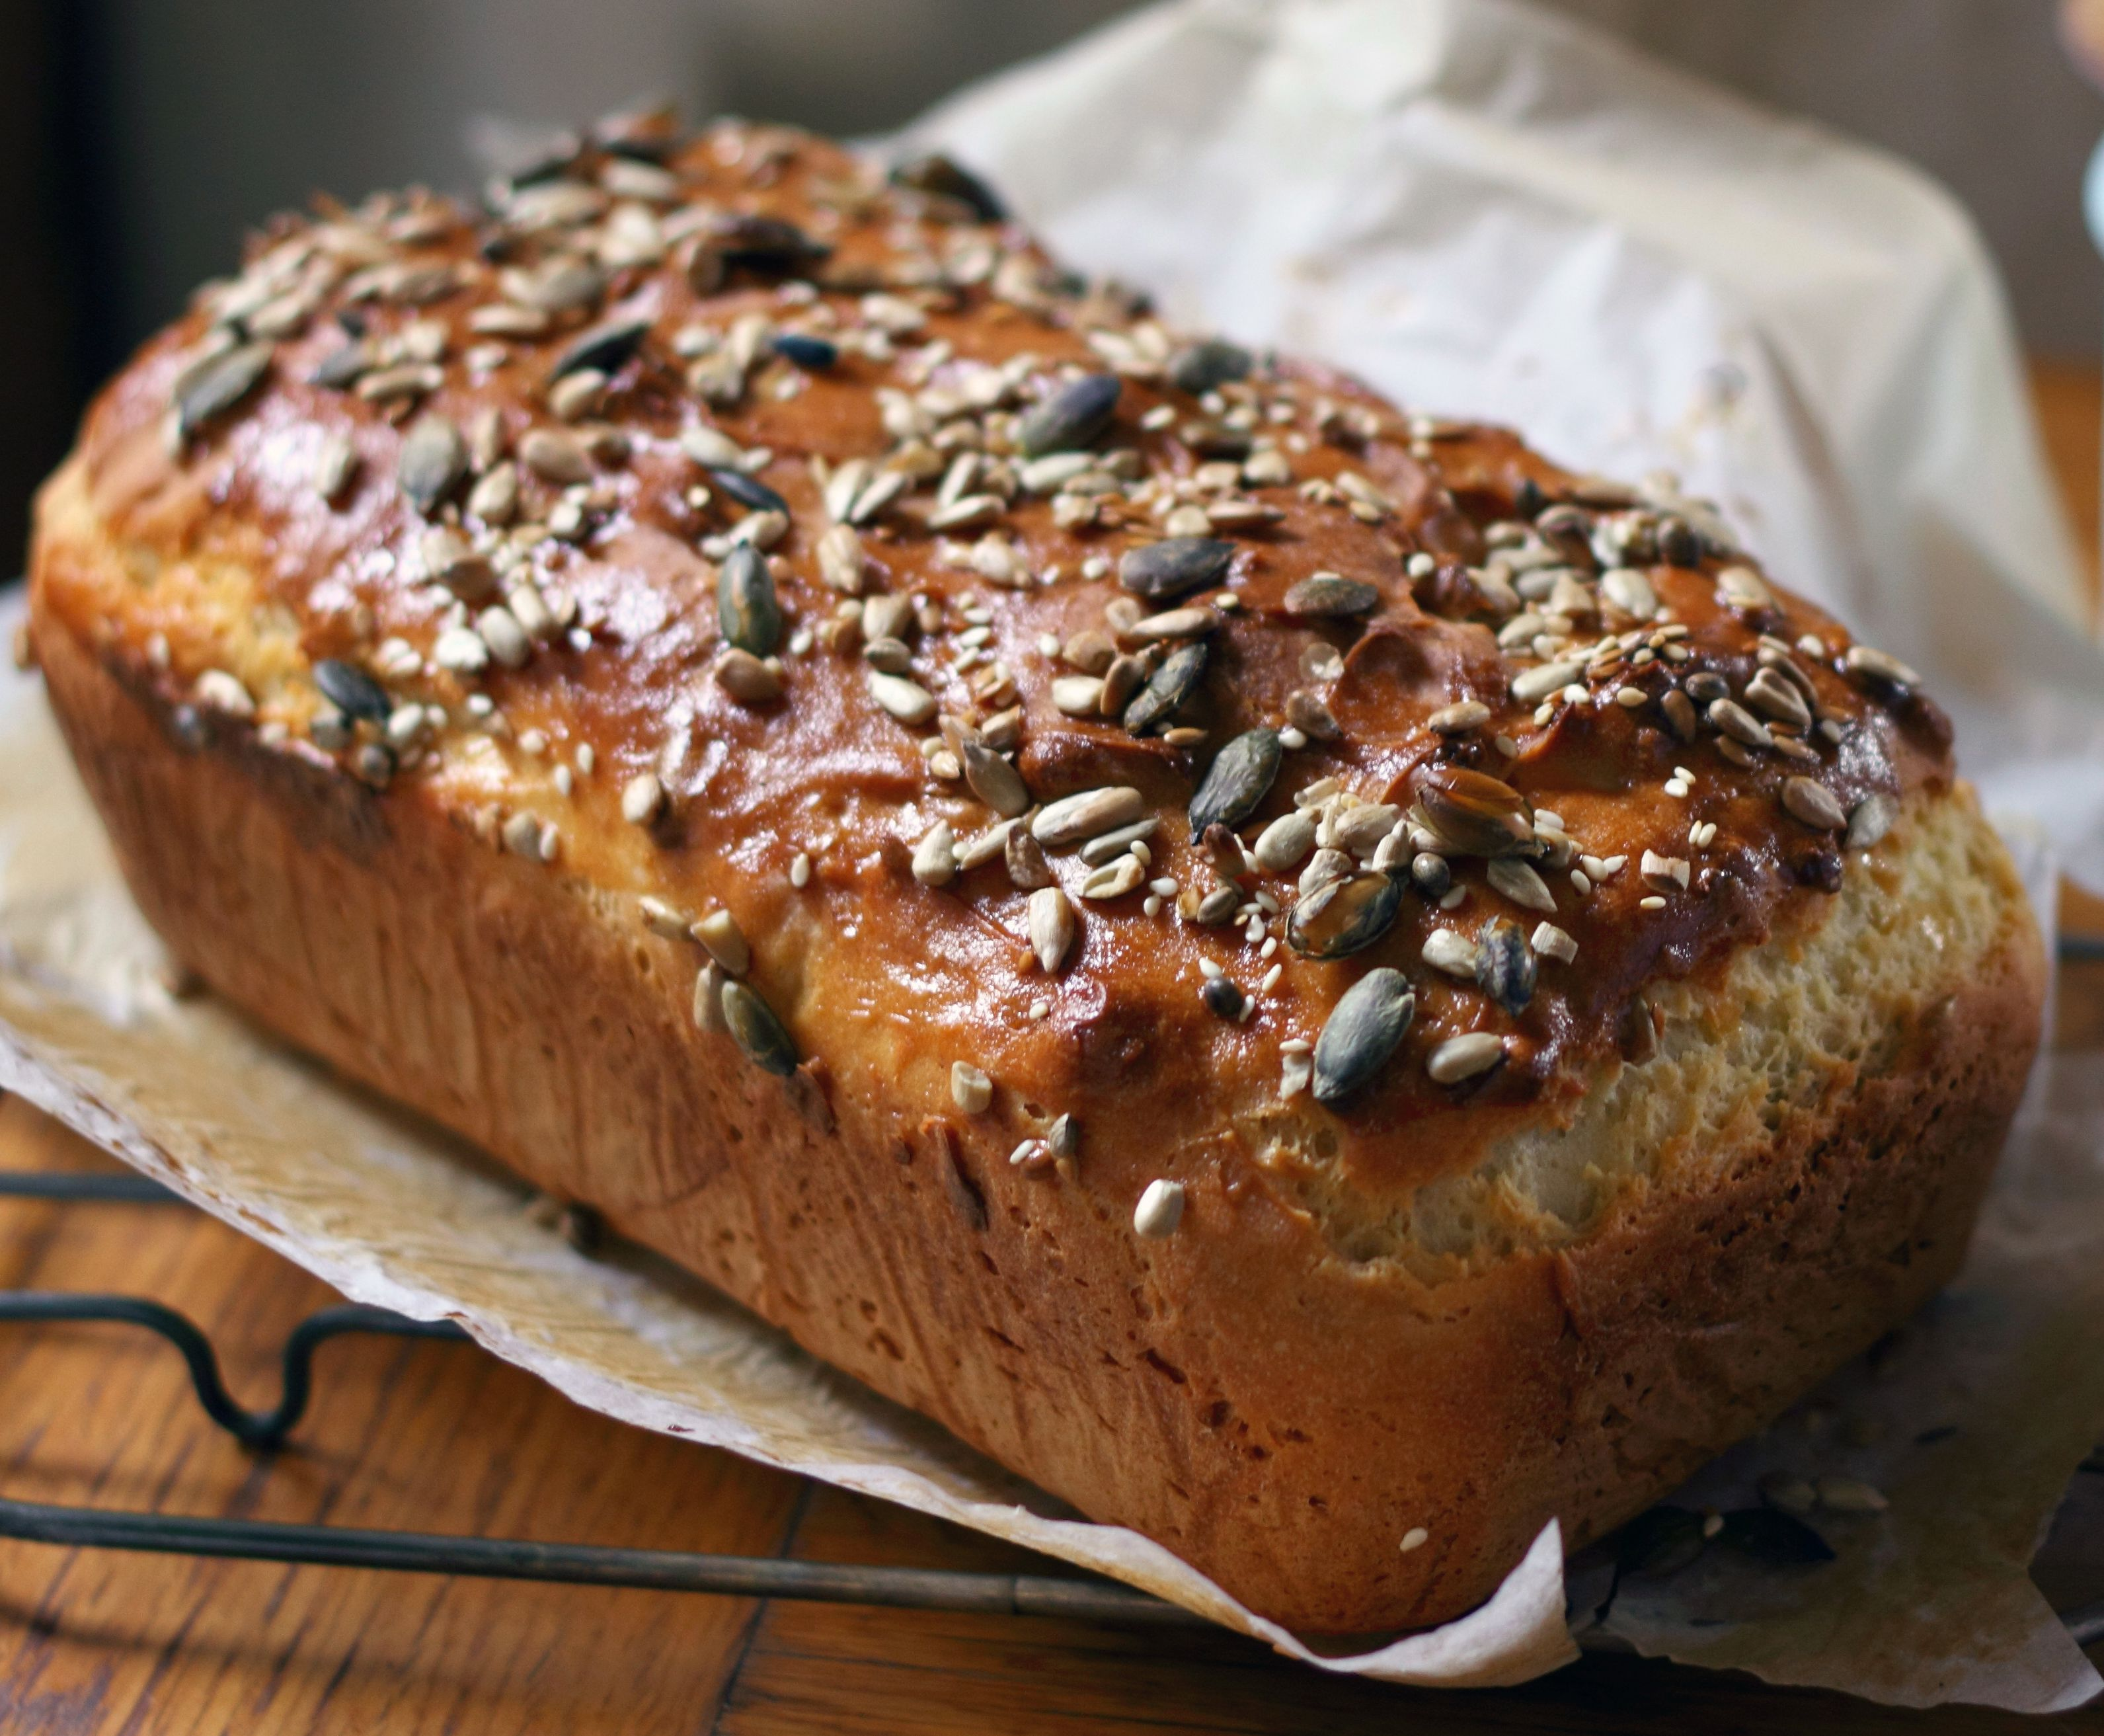 Multi seeded wheat free bread recipe free wheat free bread and multi seeded wheat free bread bake off recipesbbc forumfinder Image collections